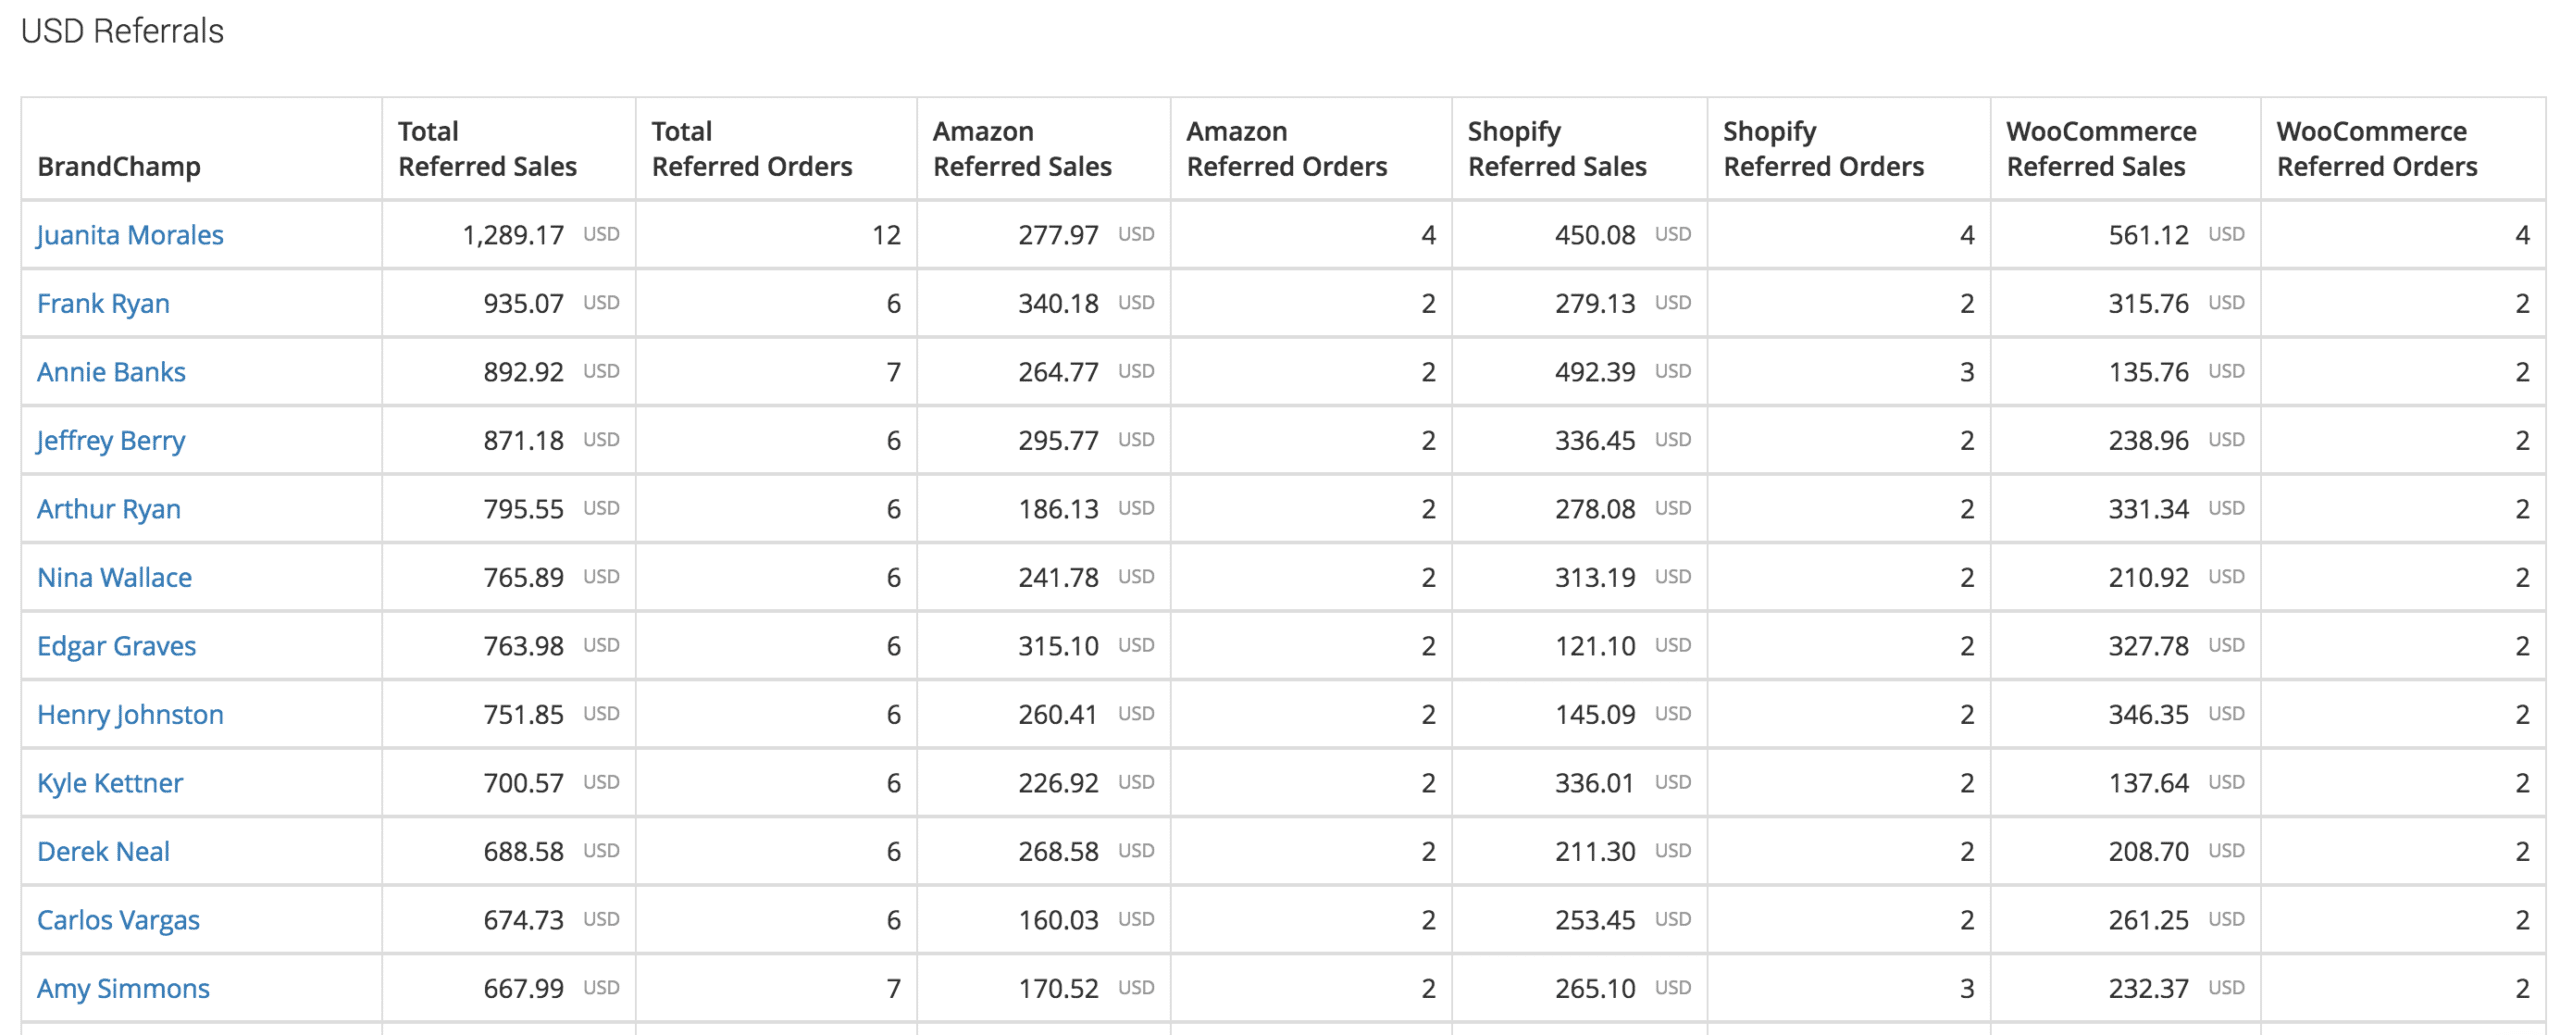 Ranking of ambassadors by referral sales Amazon Shopify WooCommerce